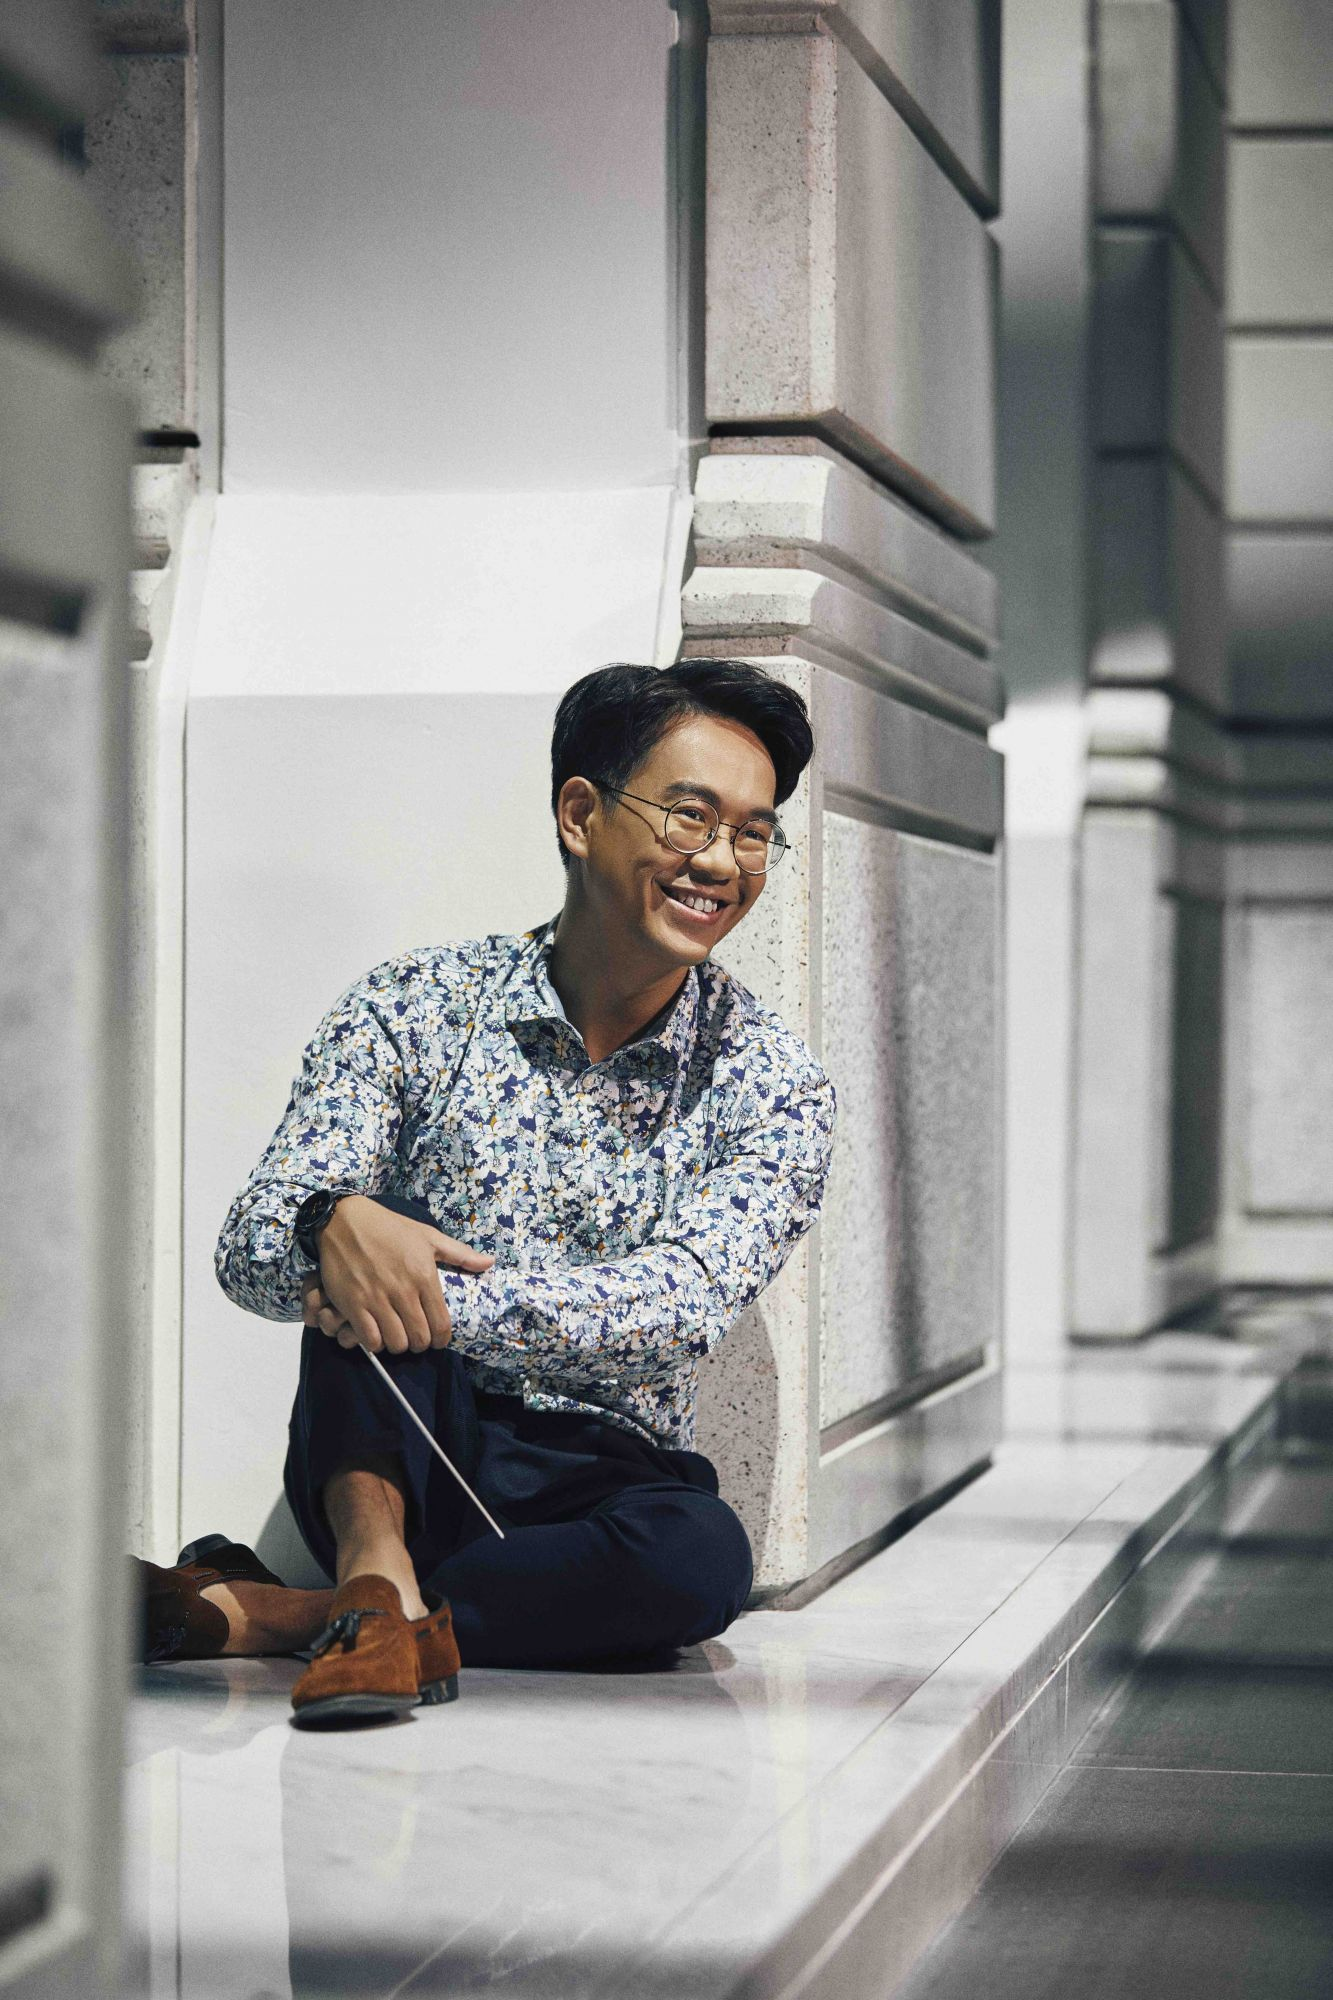 Ding Yi Music Company's Dedric Wong on His Chinese Orchestra Journey